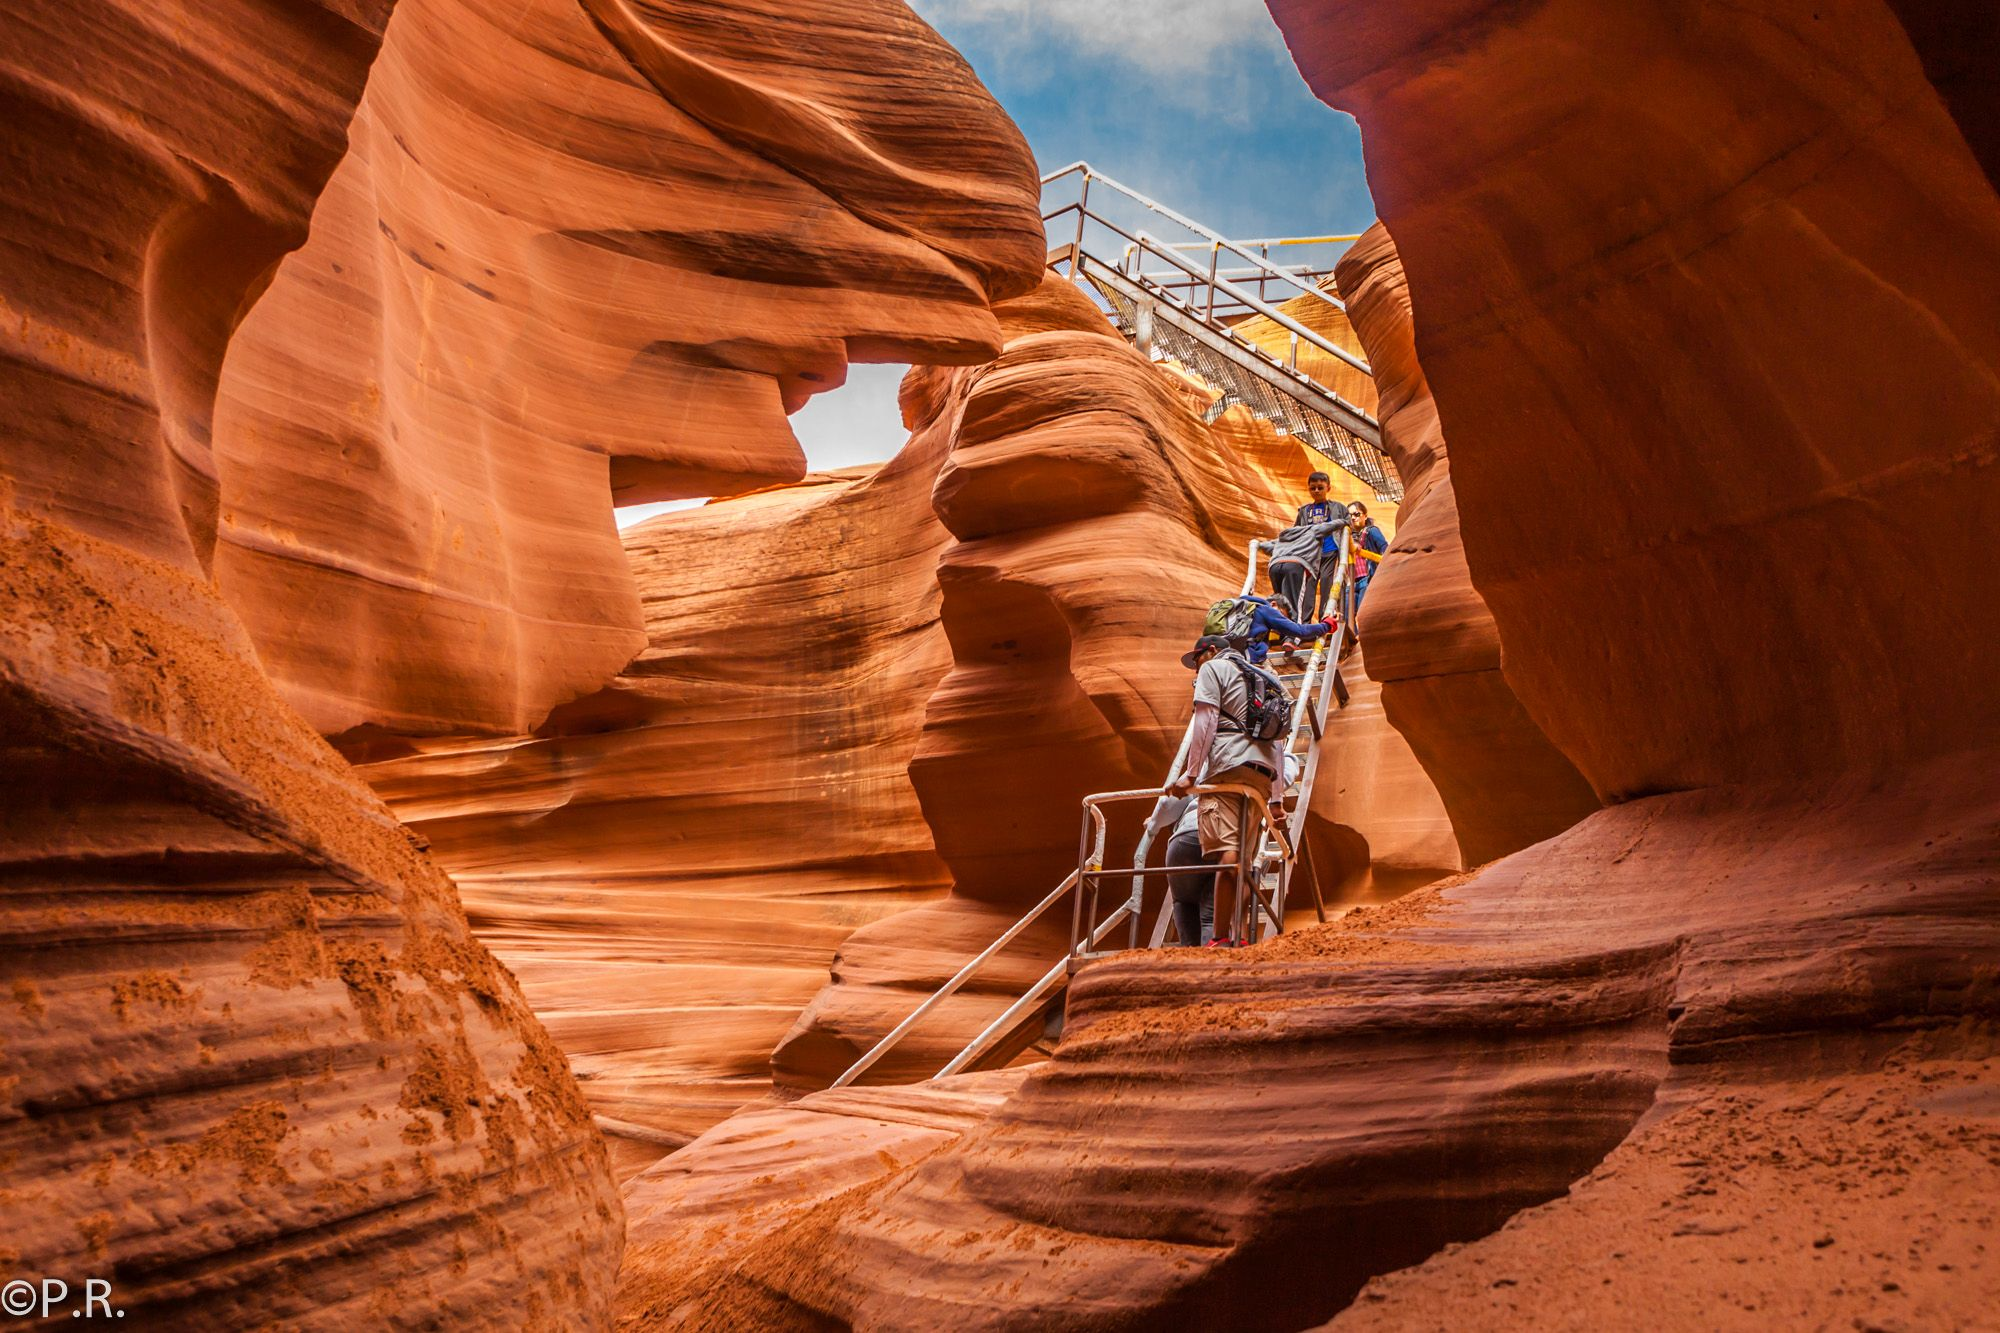 Lower Antelope Canyon Tour - Gate to Adventures